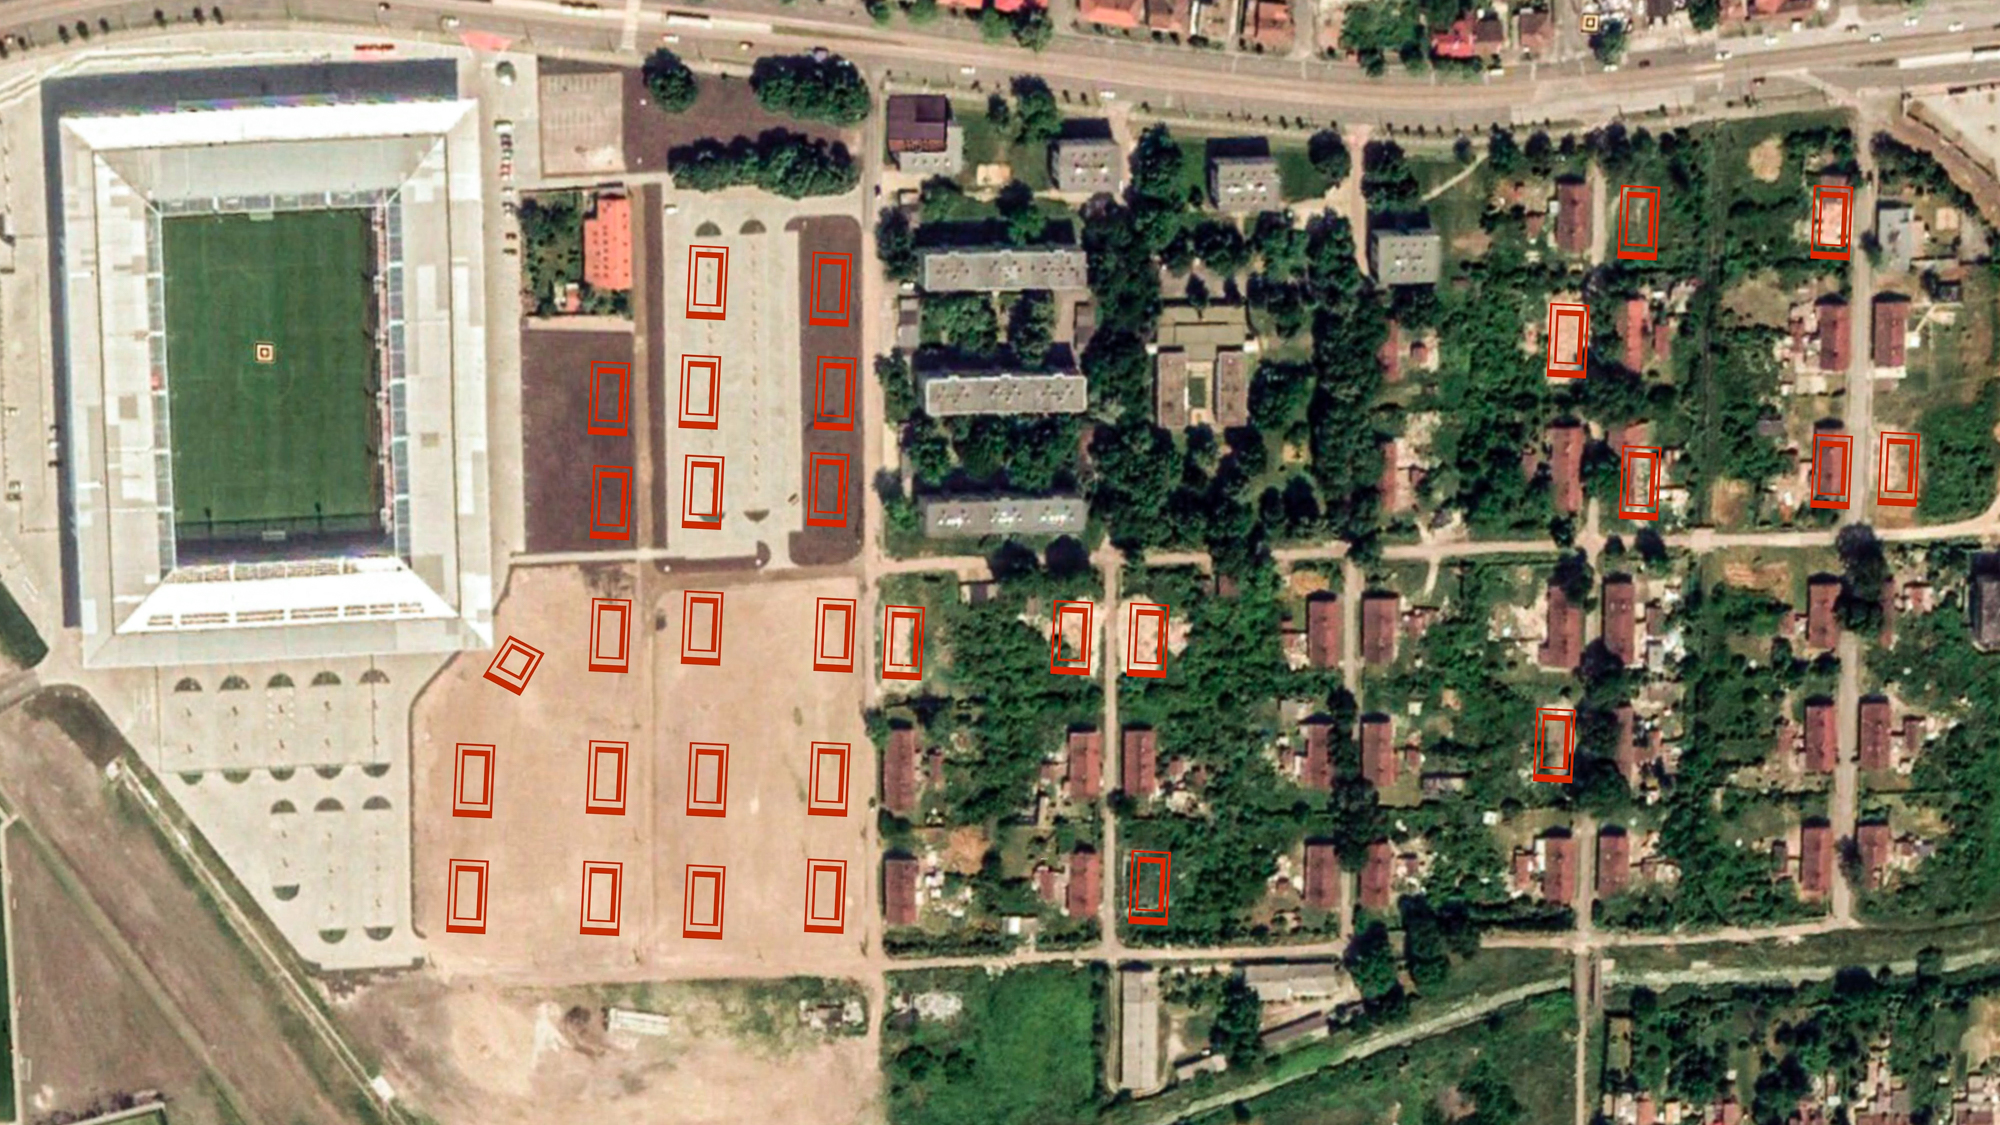 After: A satellite shot from 2018 shows the new stadium with a parking lot and empty fields where 20 houses once stood. The city continues to evict Roma as they can, and tear down homes far from the stadium, as the red rectangles — destroyed and partially destroyed homes — throughout the Numbered Streets indicate.